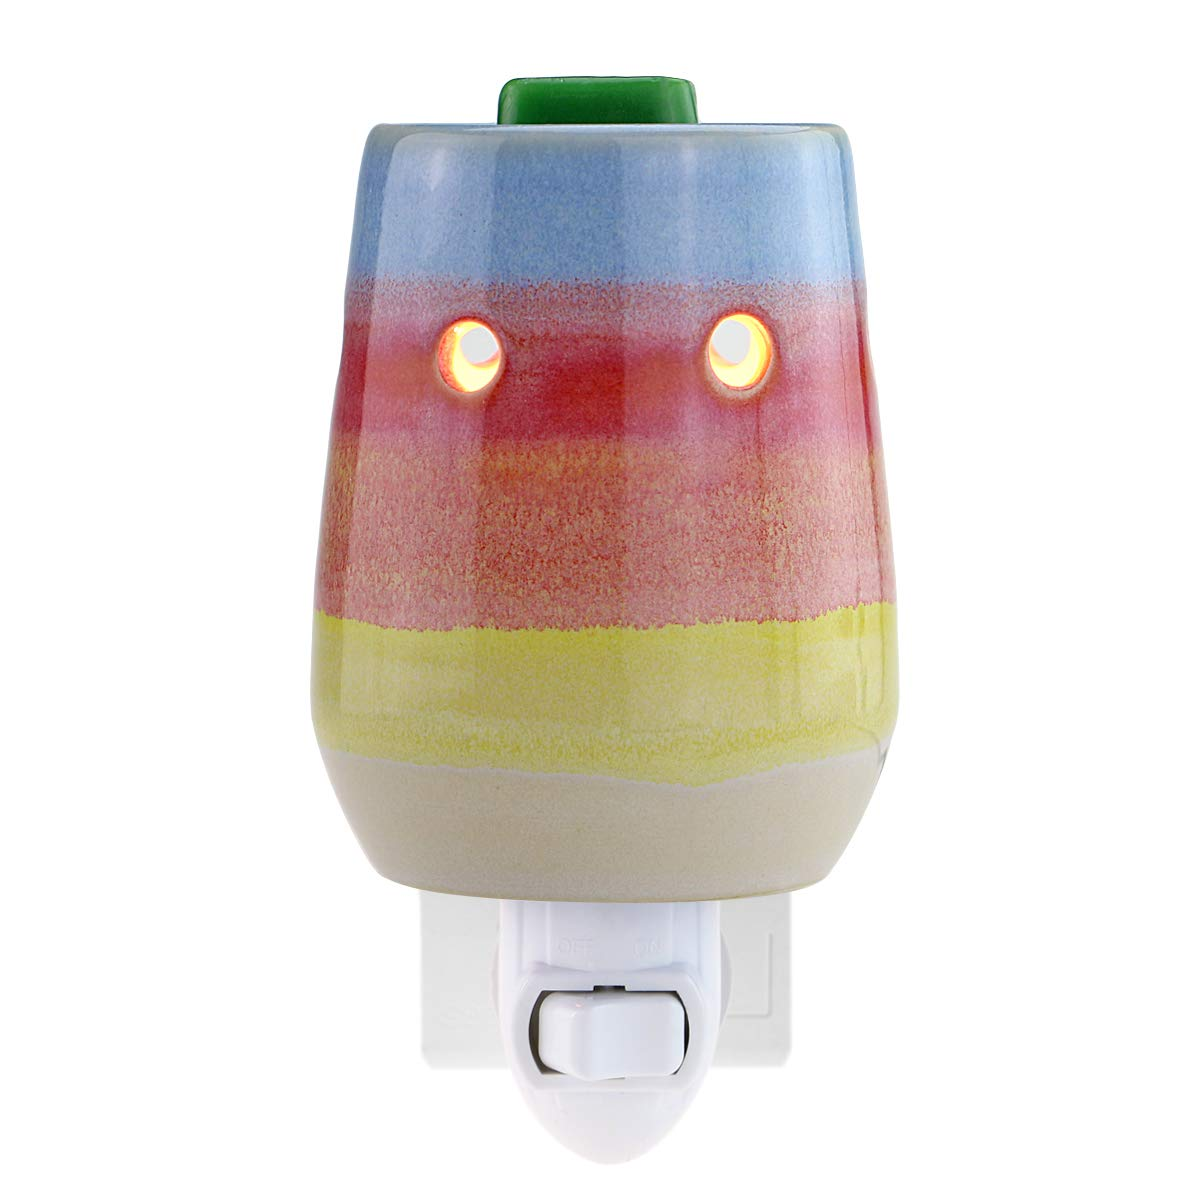 STAR MOON Plug in Wax Melt Warmer, Outlet Wax Warmer for Home Décor, Home Fragrance Diffuser, No Flame, with One More Bulb, Rainbow Stripe